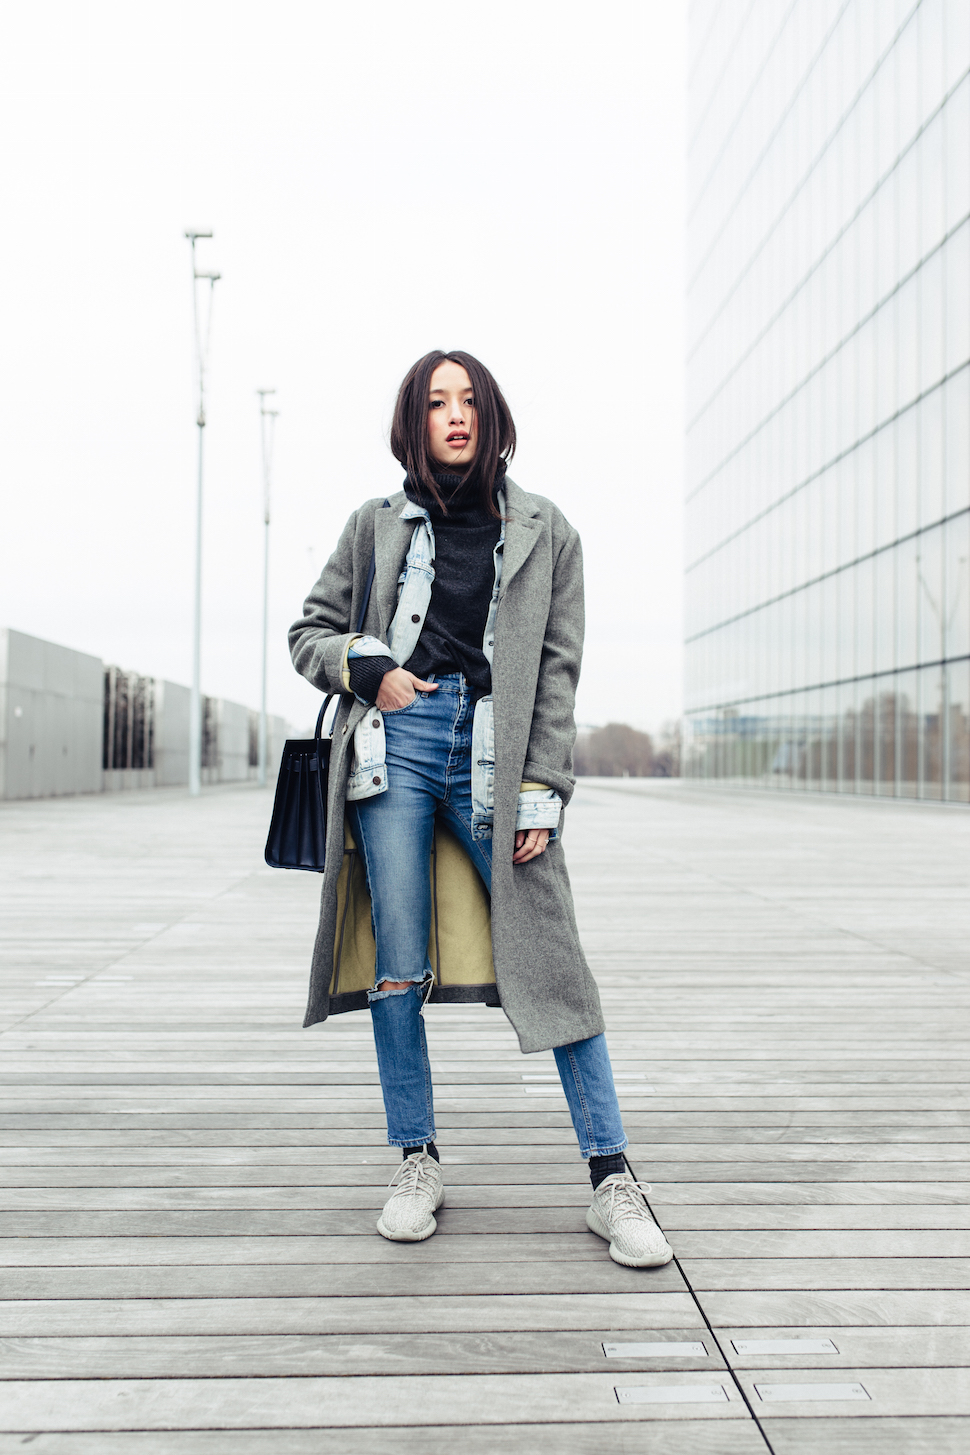 High waisted jeans are an absolute killer trend! Alexandra Guerain rocks a pair of distressed denim jeans as part of a cute winter outfit featuring a grey maxi coat and black rollneck top. Outfit: Asos.